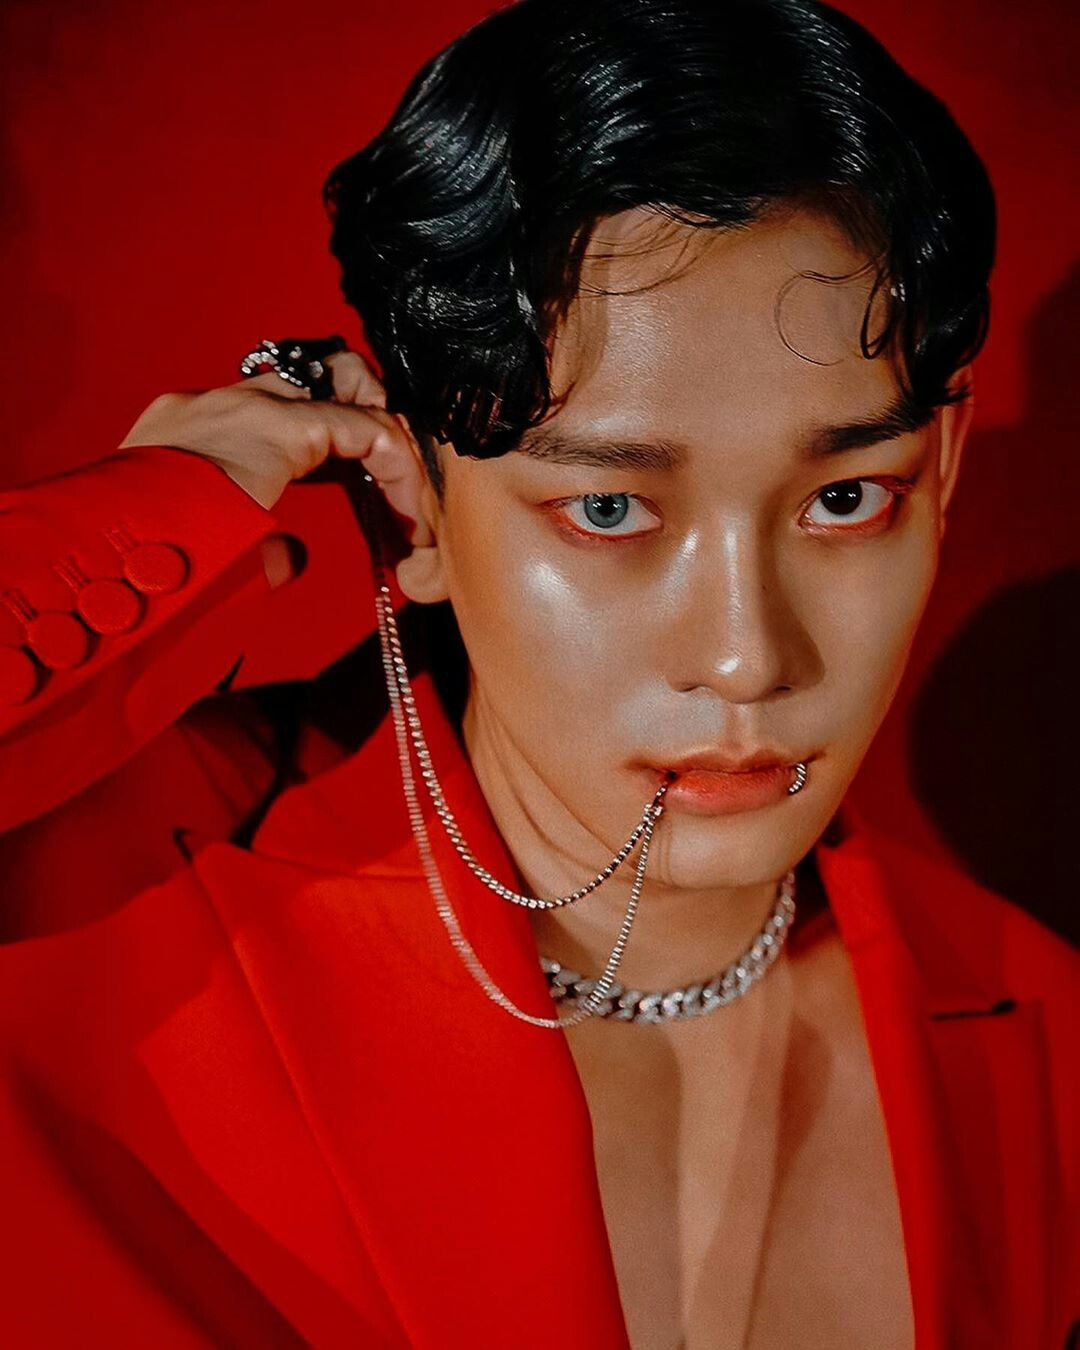 EXO - Obsession Concept Teaser Image #CHEN HD #exoobsession EXO - Obsession Concept Teaser Image #CHEN HD #exoobsession